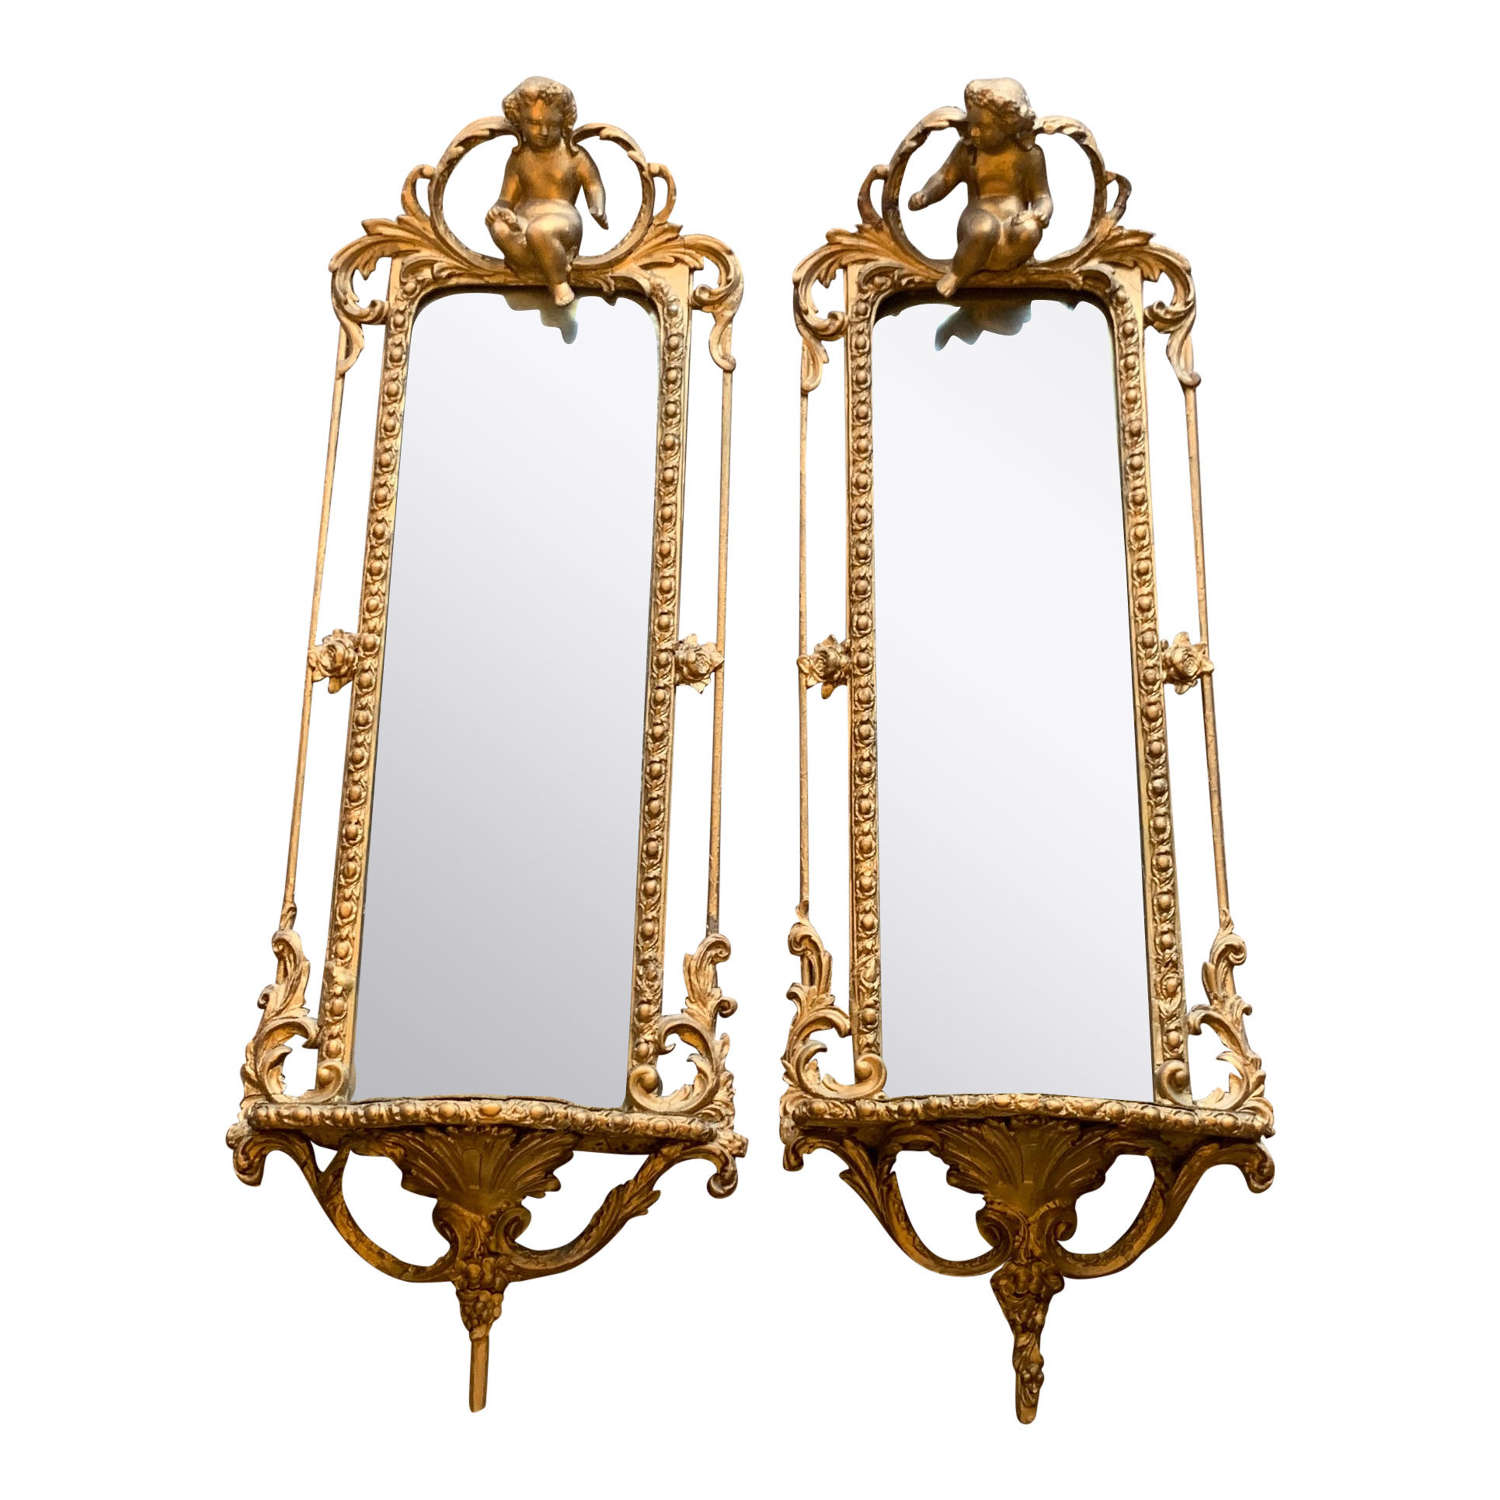 Pair of Mid 19th Century Mirror Brackets